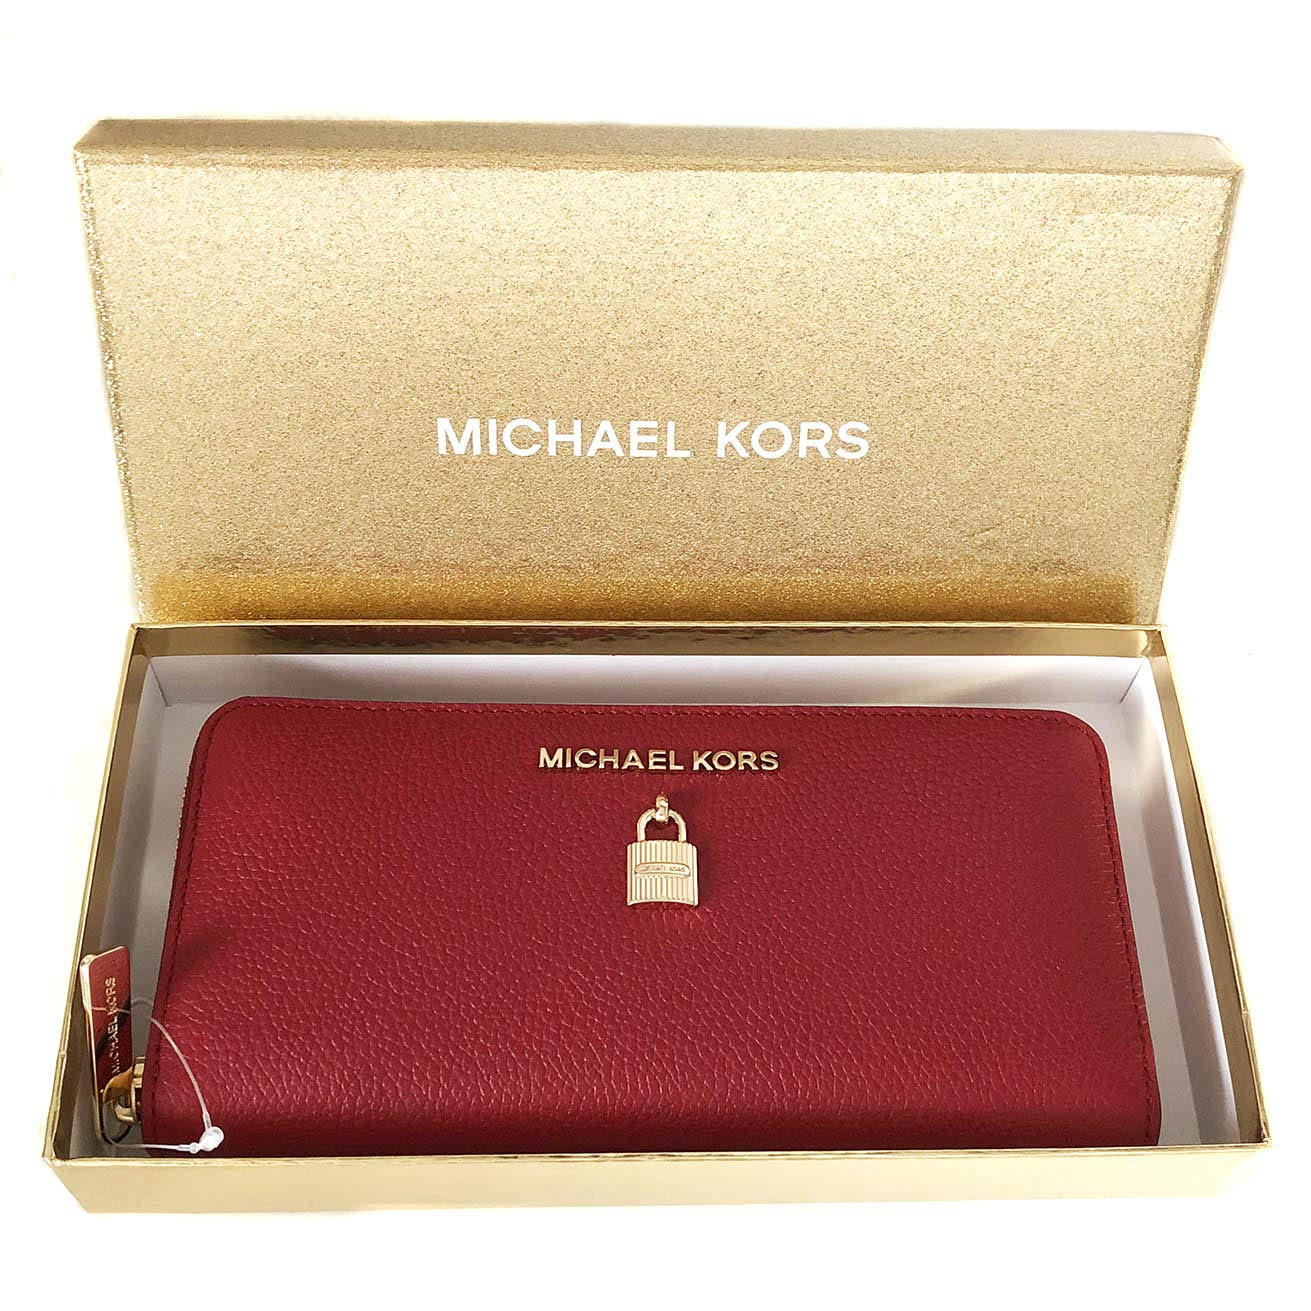 7653f7d477a4 Michael Kors MK Large Scarlet Red Adele Leather Purse Wallet Gift Boxed